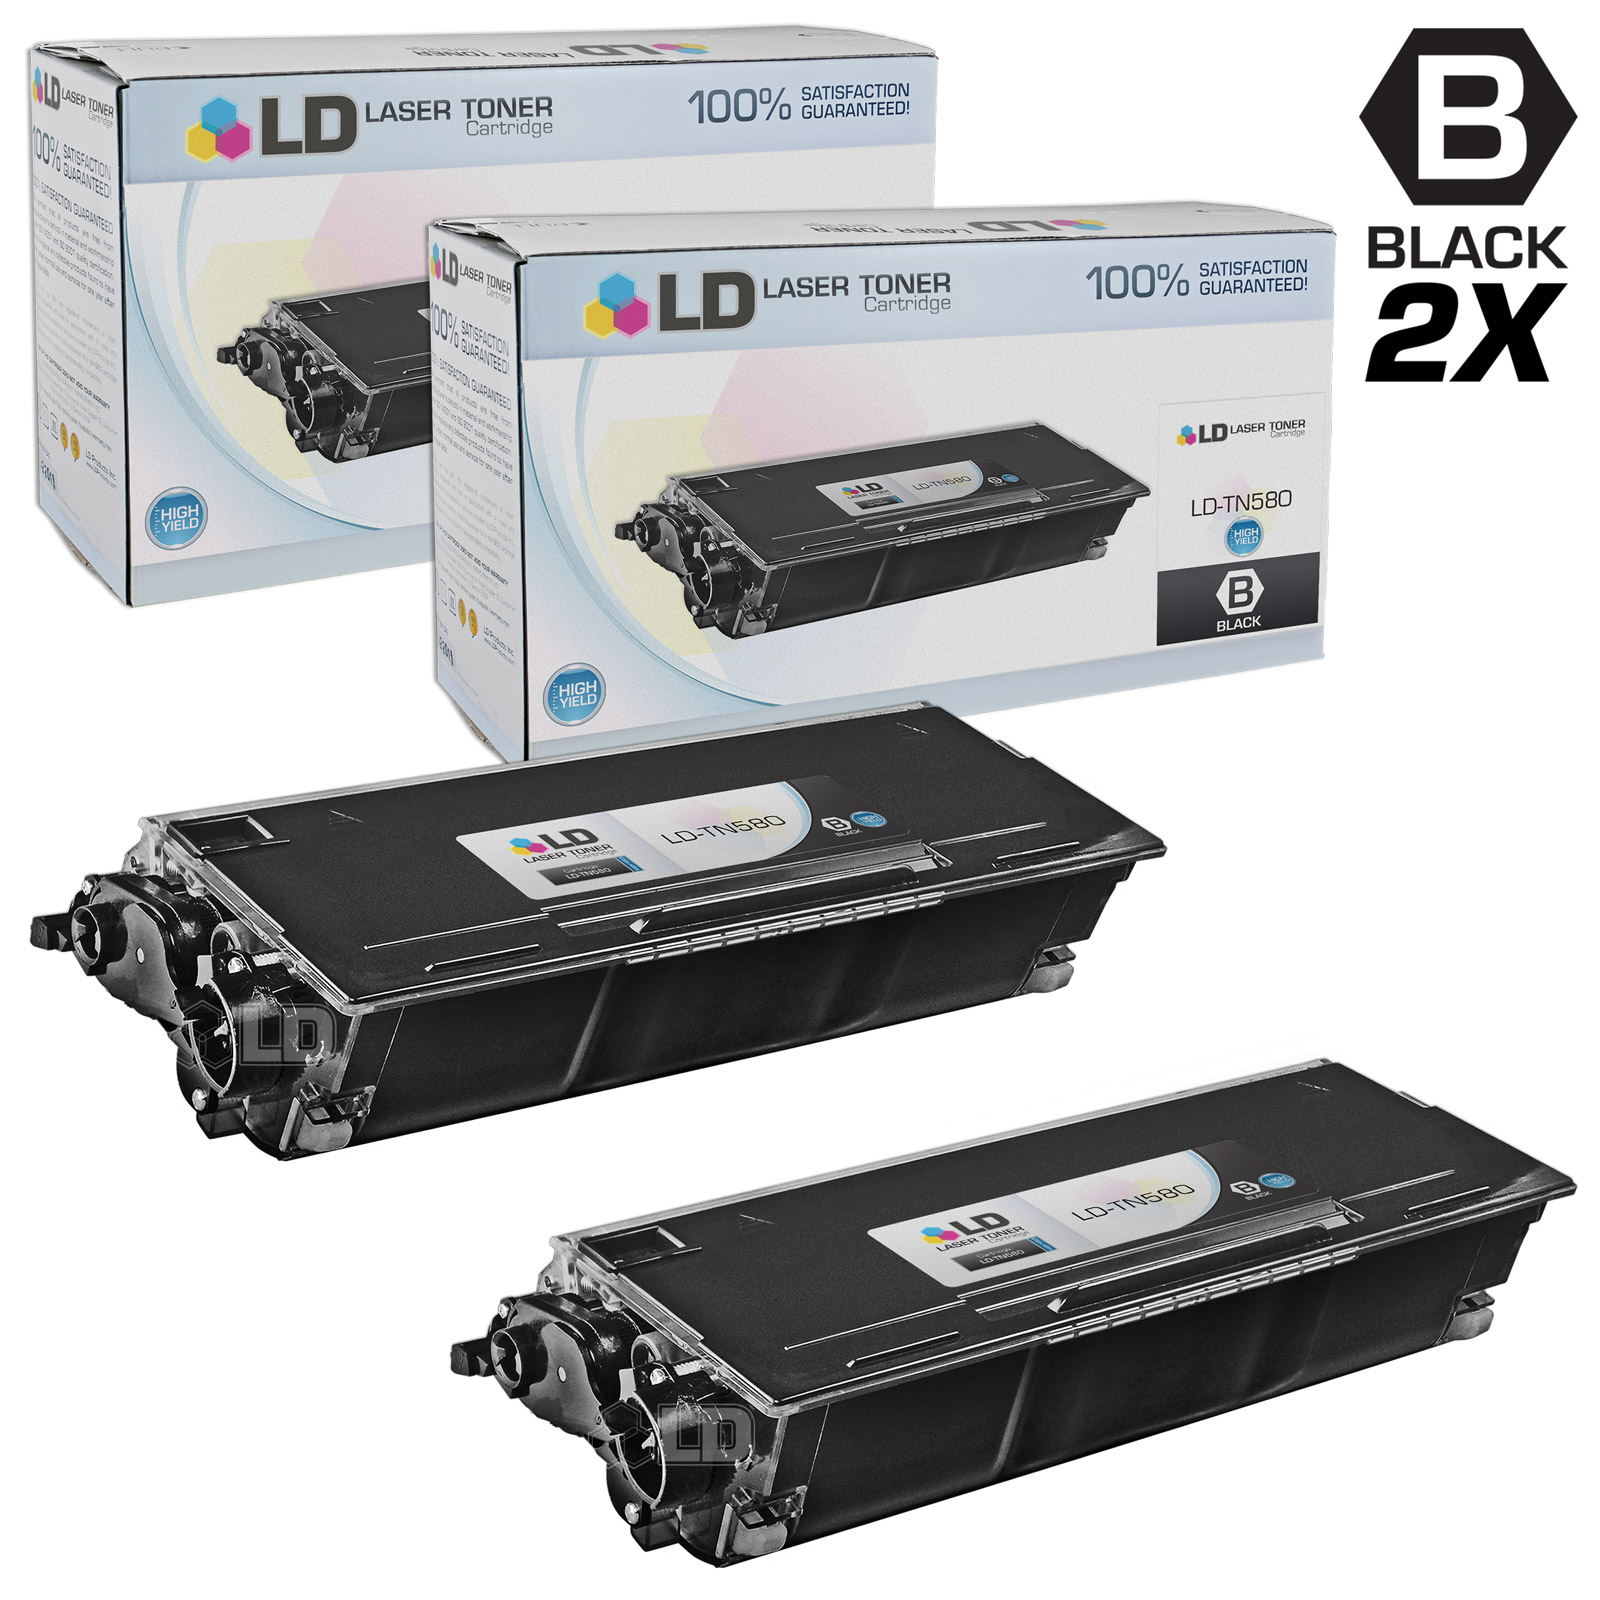 LD Compatible Brother TN580 (TN550) Set of 2 HY Black Cartridges for DCP-8060, DCP-8065, DCP-8065DN, HL-5200, HL-5240,